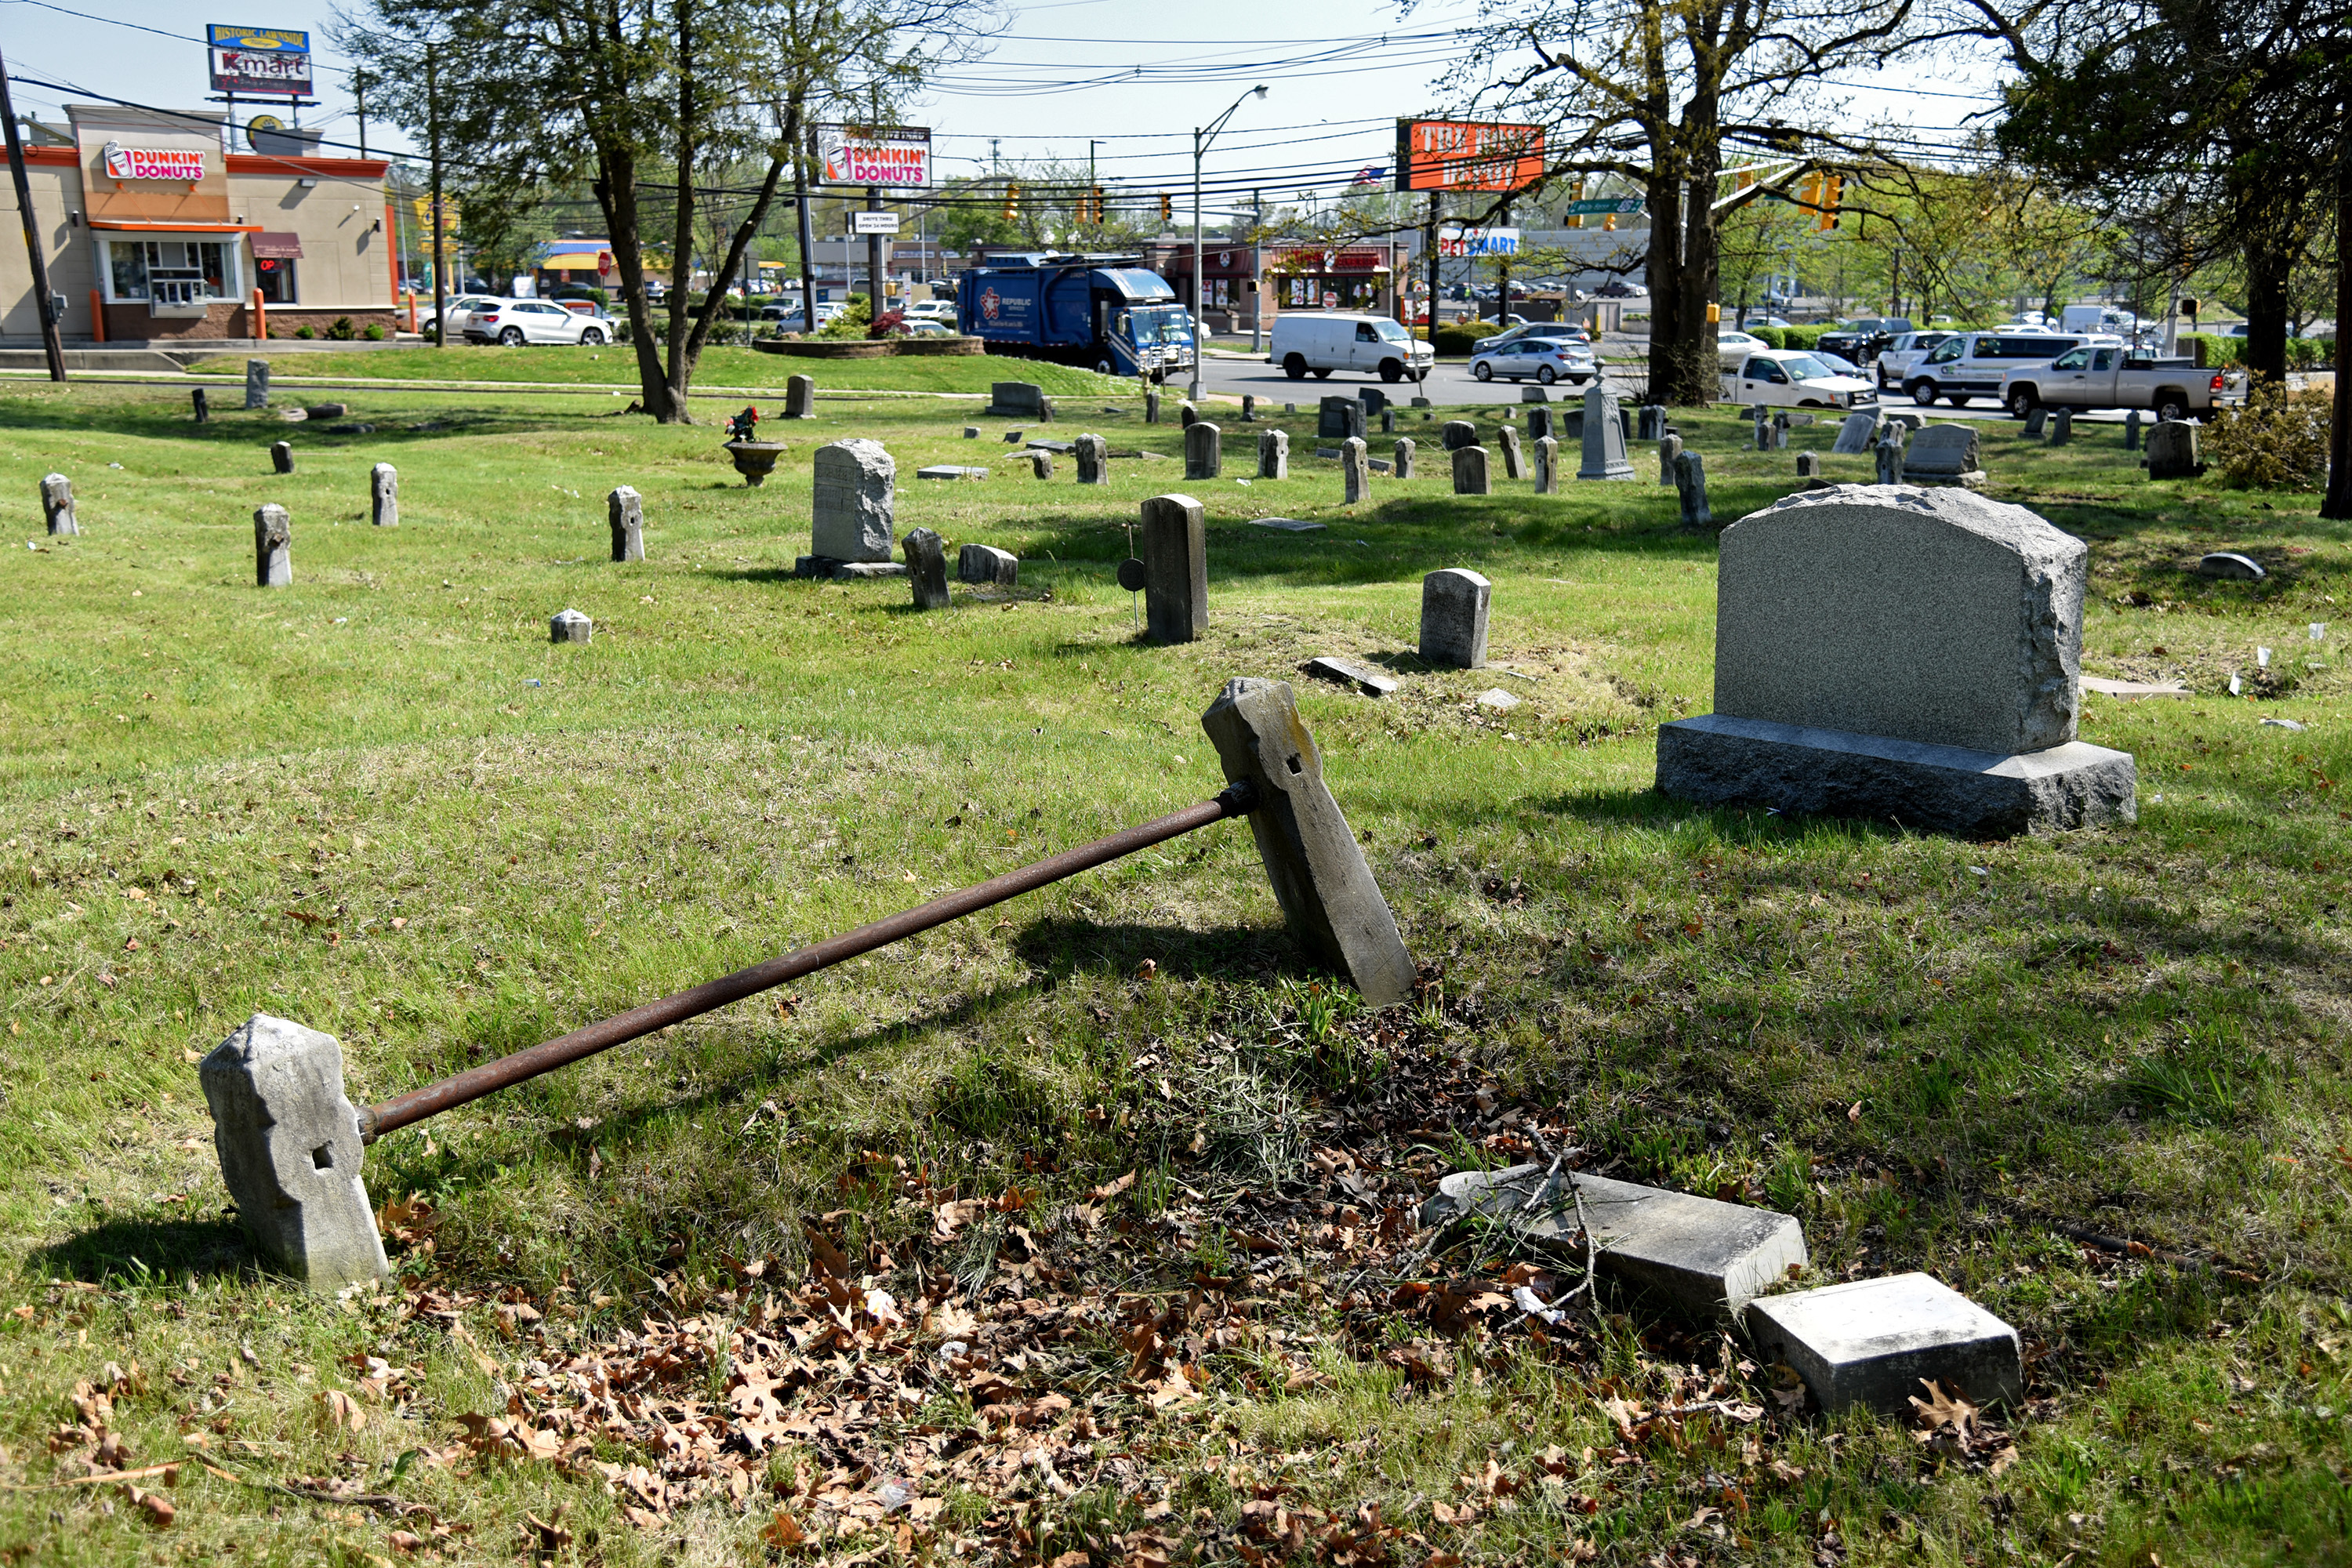 A clean-up is planned for Saturday at the Mount Peace Cemetery in Lawnside.